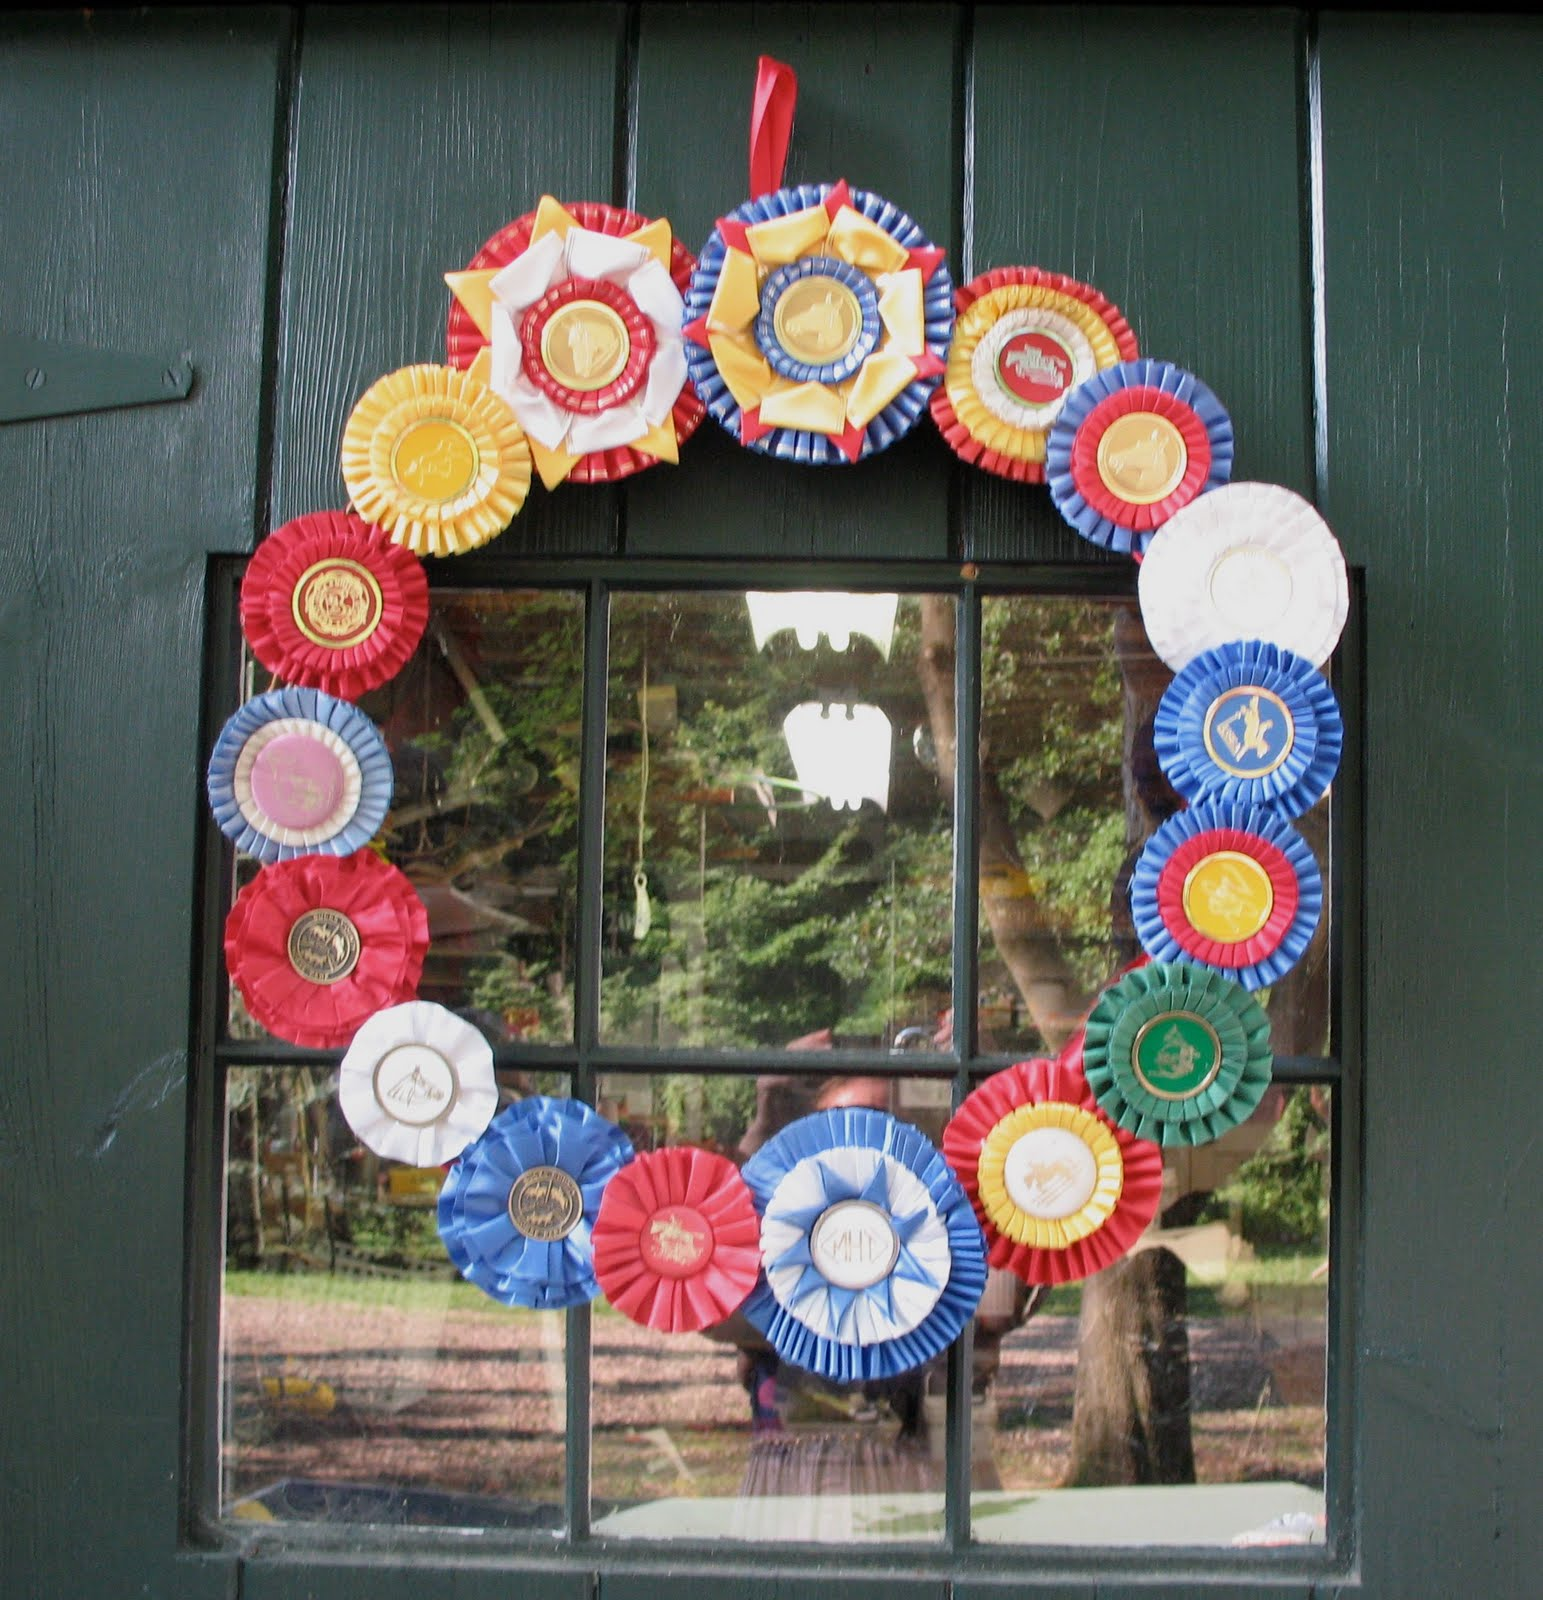 Dark horse farm designs merry making with horse show ribbons for Ribbon crafts to make